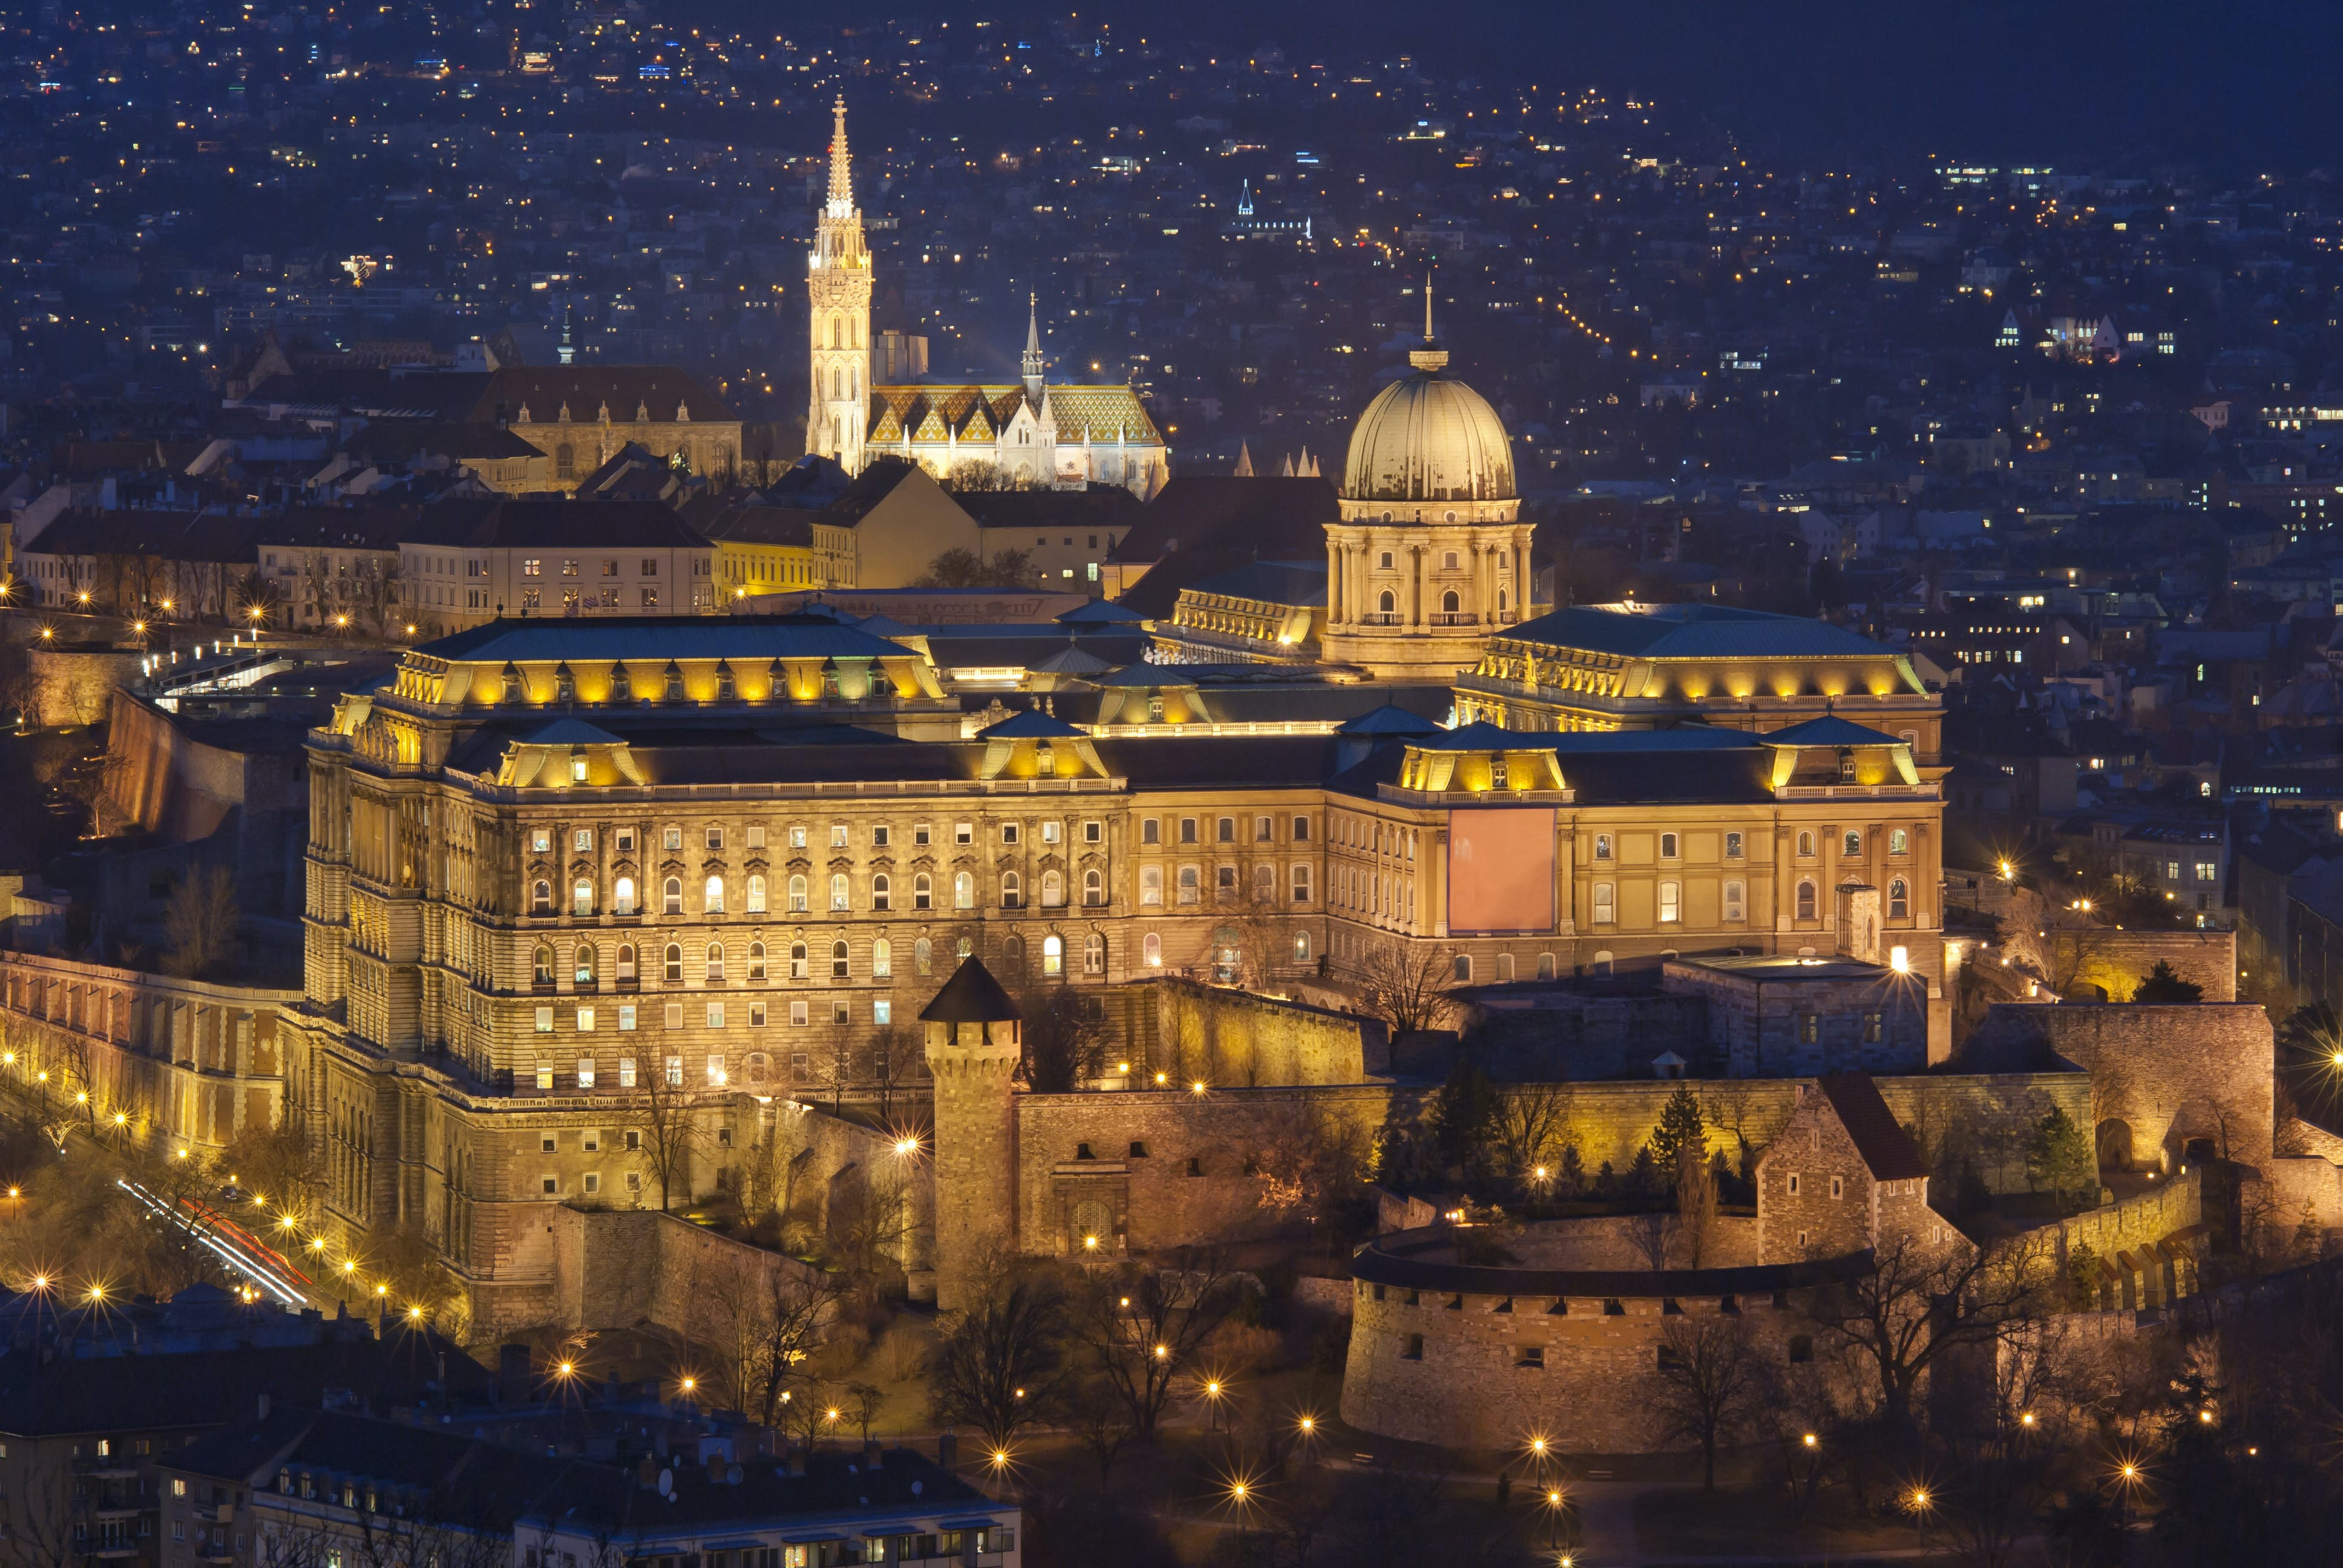 Royal Palace   Budapest, Hungary Attractions - Lonely Planet